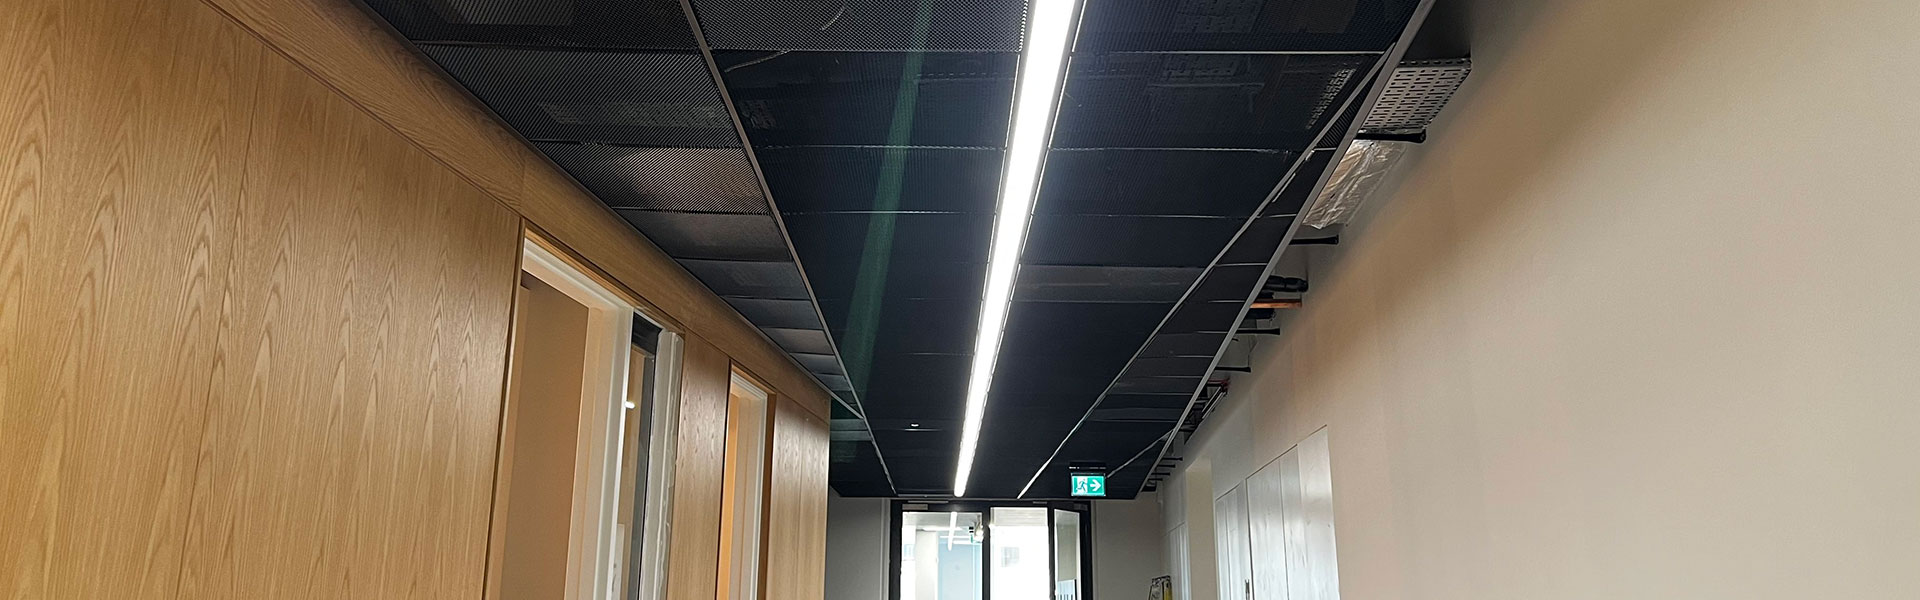 Suspended Ceilings in Glasgow